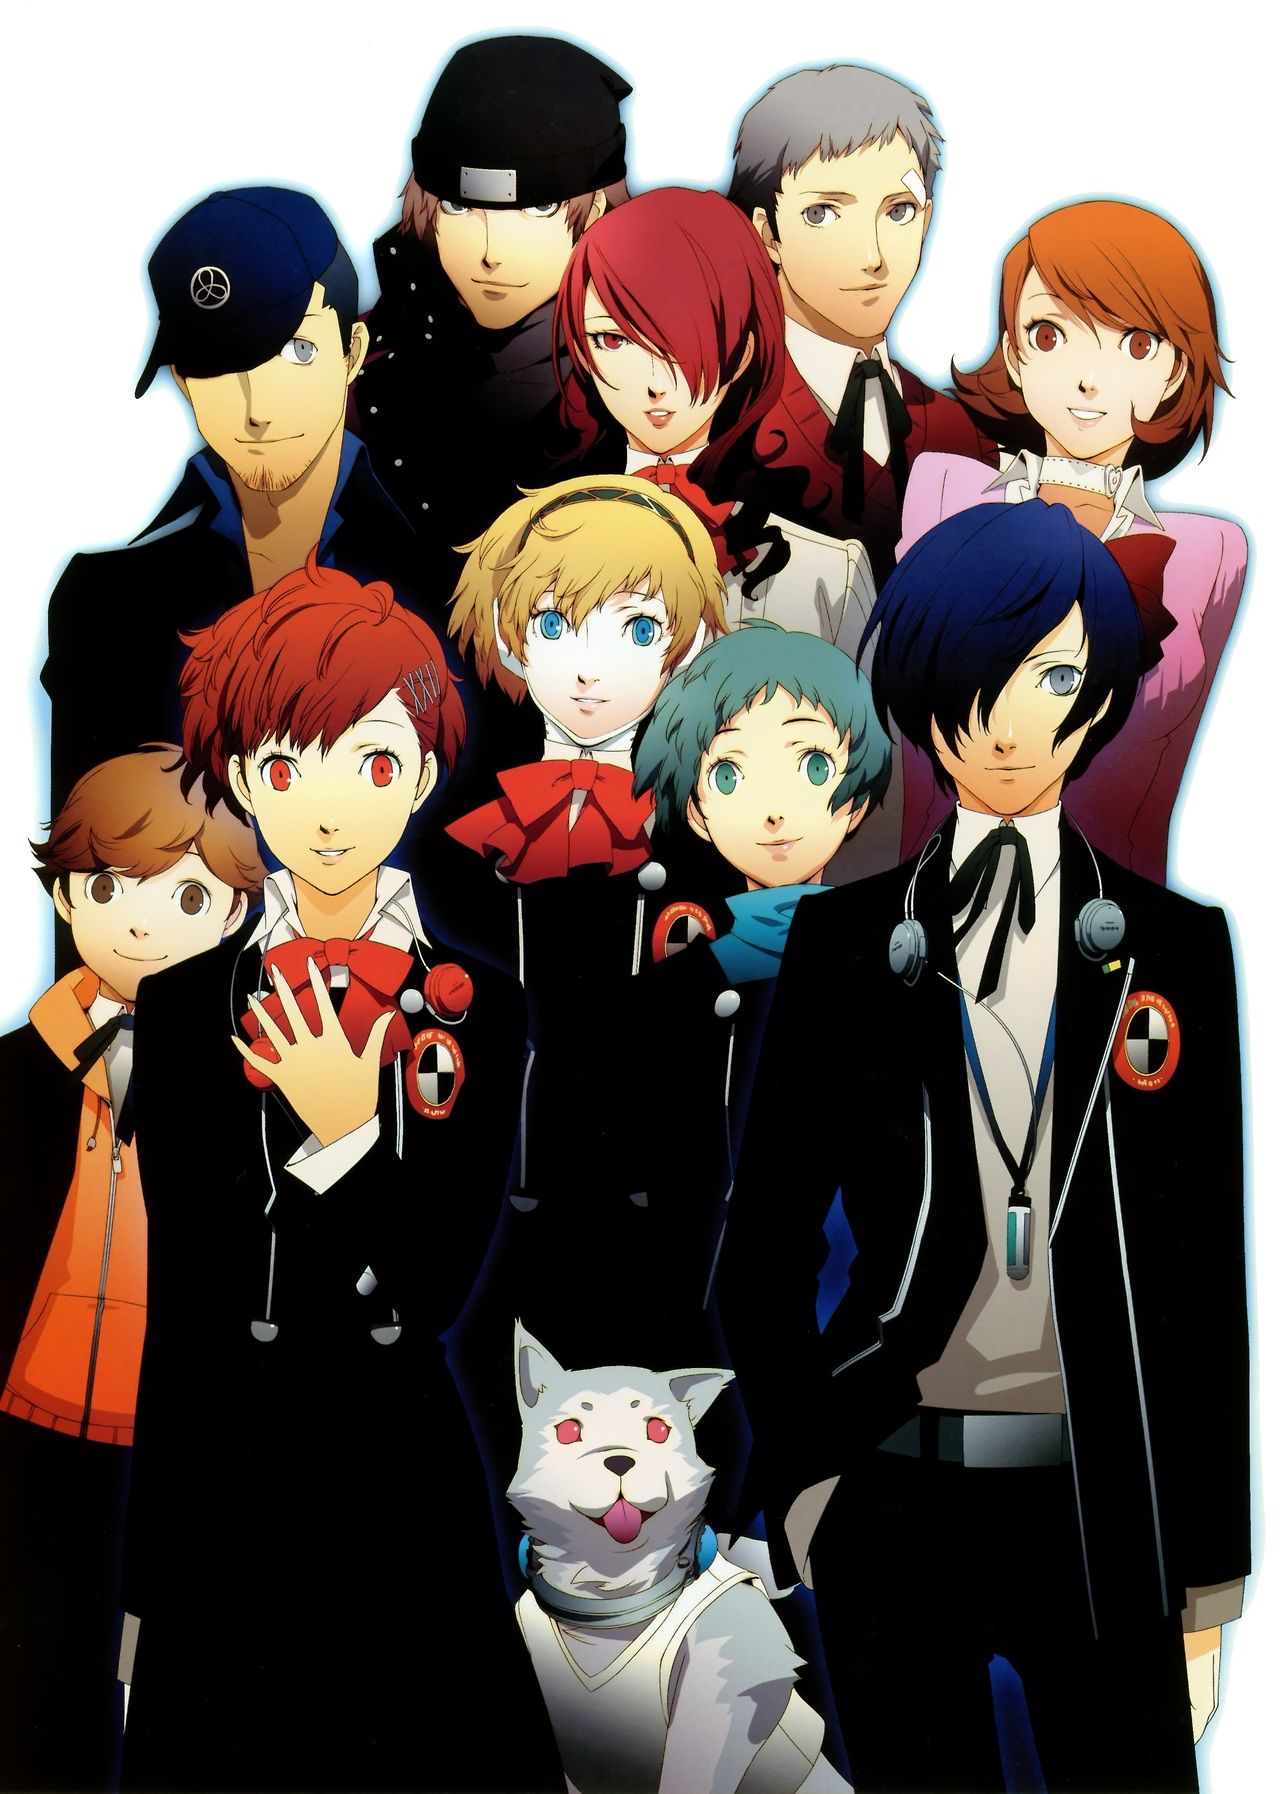 persona 3 dating characters